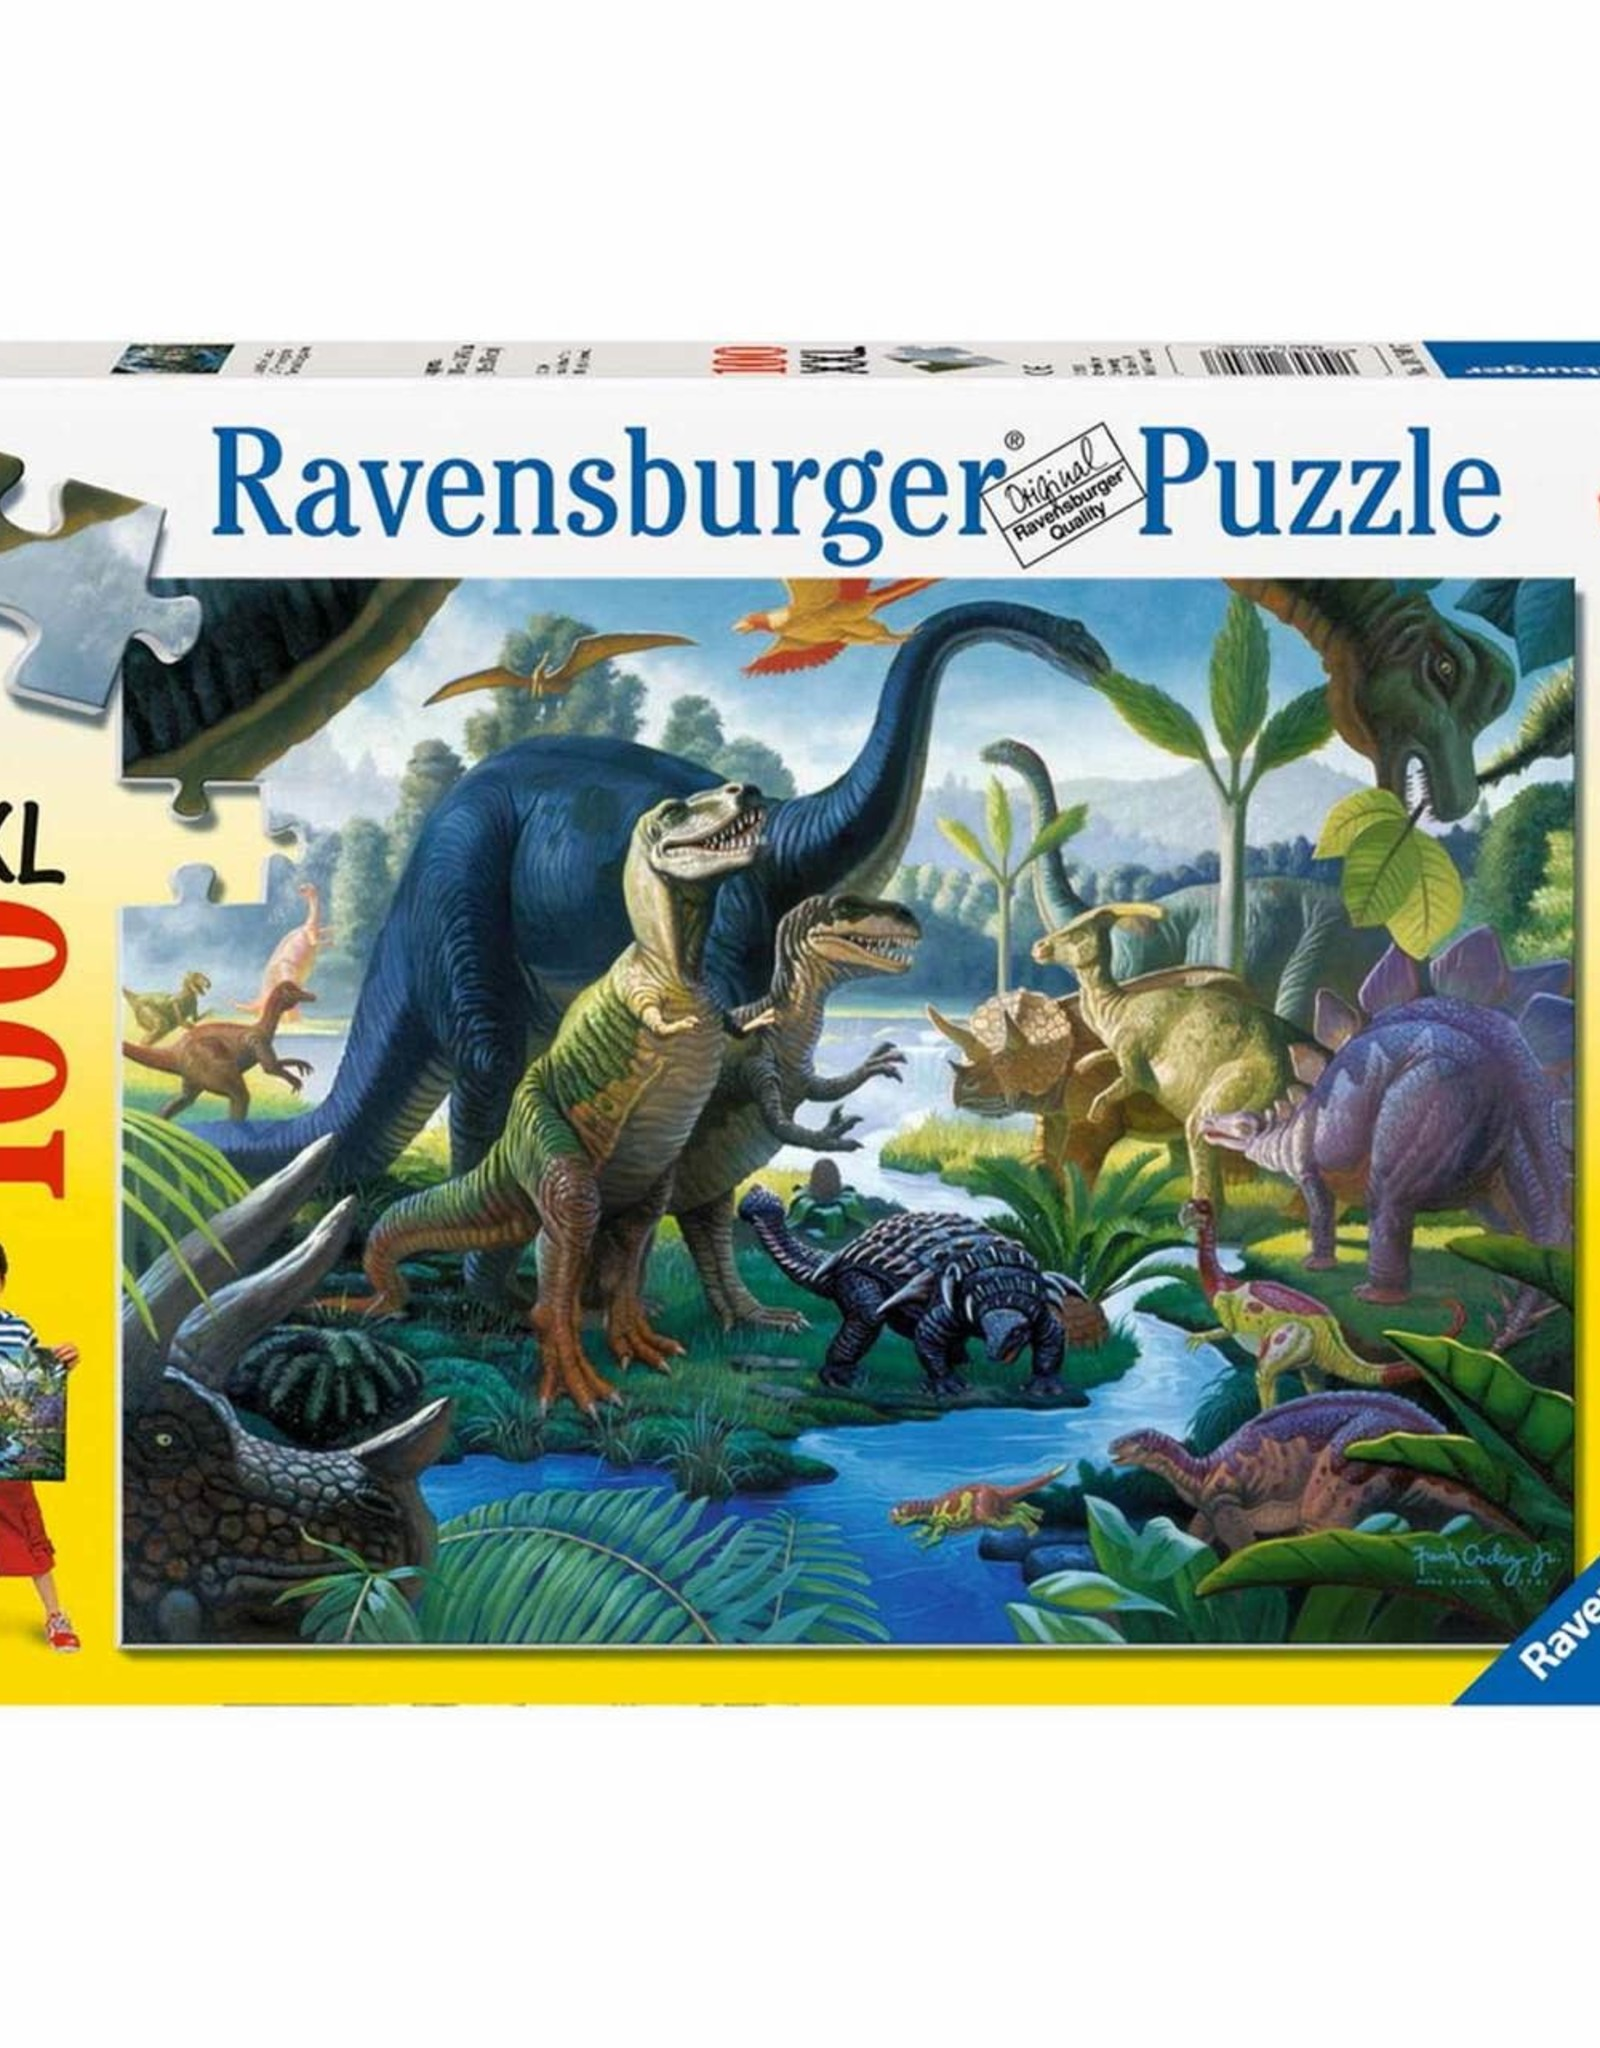 Ravensburger 100pc XXL puzzle Land of Giants